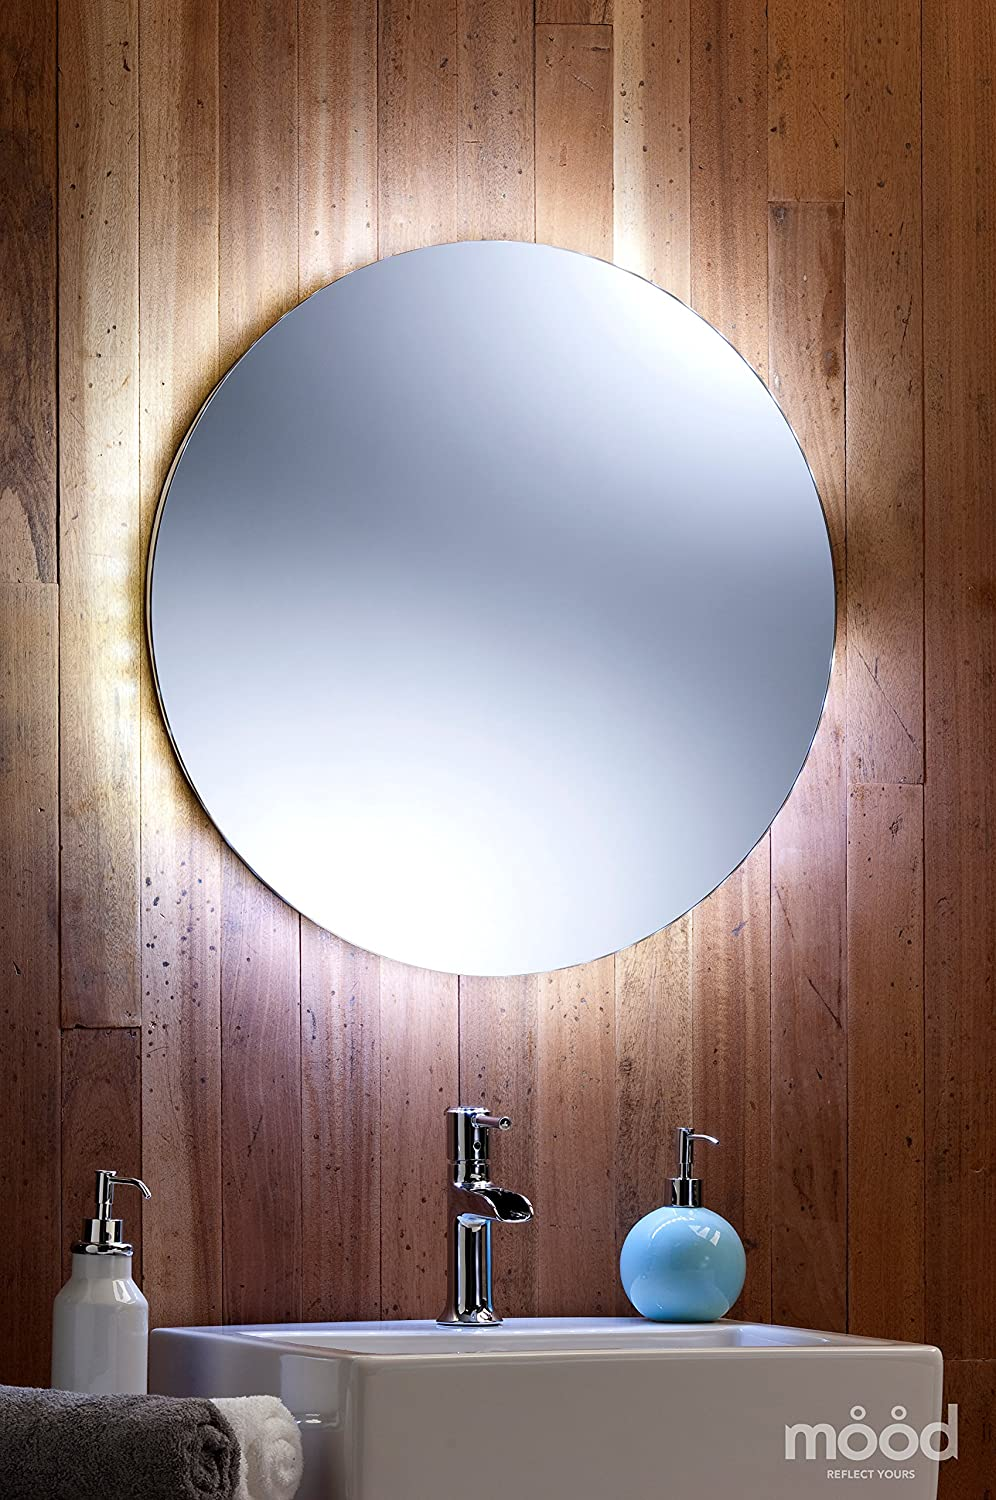 Neue Design Bathroom Mirror LED Ambient White Surround Light Round on unique bathroom lighting ideas, bathroom sink lighting ideas, bathroom mirror over recessed lighting, bathroom mirror trim ideas, bathroom vanity mirrors, bathroom mirror cabinet ideas, bathroom shower lighting ideas, bathroom mirror makeover ideas, bathroom sconces and mirrors, bathroom vanity lighting, bathroom wall mirror ideas, bathroom mirror border ideas, bathroom sconce lighting, bathroom lights, update bathroom mirror ideas, master bathroom lighting ideas, vanity mirror lighting ideas, bathroom lighting fixtures, bathroom curtains at lowe's, bathroom lighting ideas over mirror,